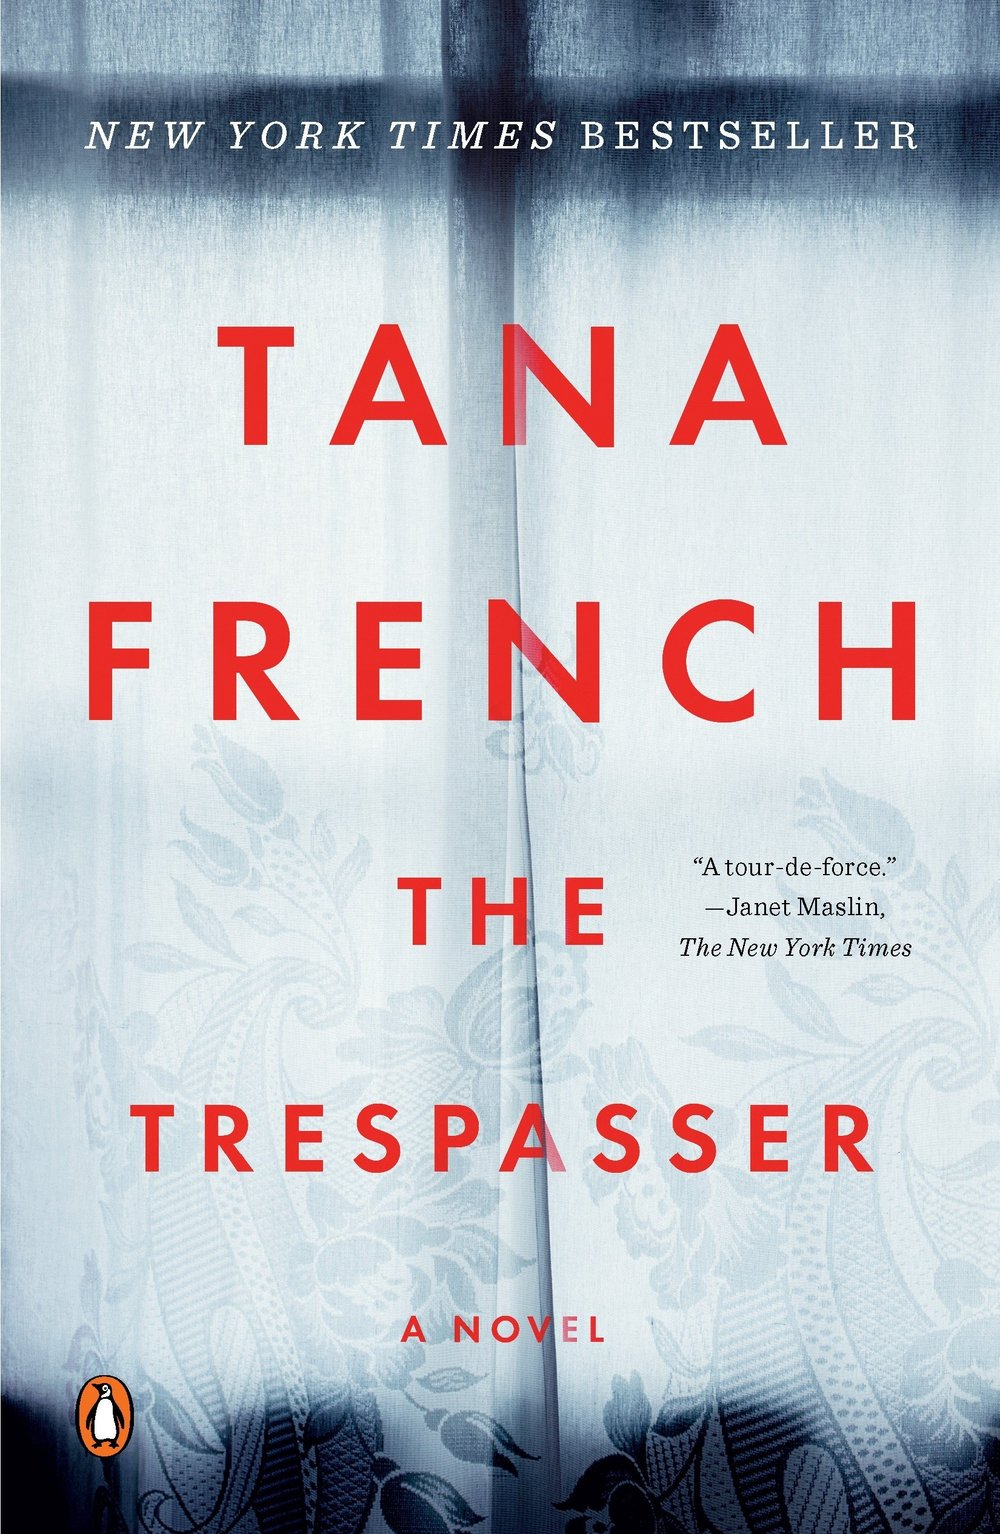 "BSG #19: Jaysus! / The Trespasser - Get out your magnifying glasses because it's time for a classic detective story as we dive into Tana French's newest novel, The Trespasser. The #BookSquad talks about the mystery genre, the ""femme fatale"" character type, and subverting expectations in detective fiction. Plus, we answer the question: Just how Irish is this book? (Spoiler: Jaysus! It's very Irish.) There's even a new segment in this episode called Emily Recommends, where Emily tells you which Tana French book you should read next! Then we read some listener feedback from our last fullpisode on The Leftovers. After you listen to this, check out our latest content on the #BookSquadBlog, and start watching Sharp Objects if you haven't already, because that's what we're discussing on our next othersode! Don't forget to rate, review, and subscribe!"